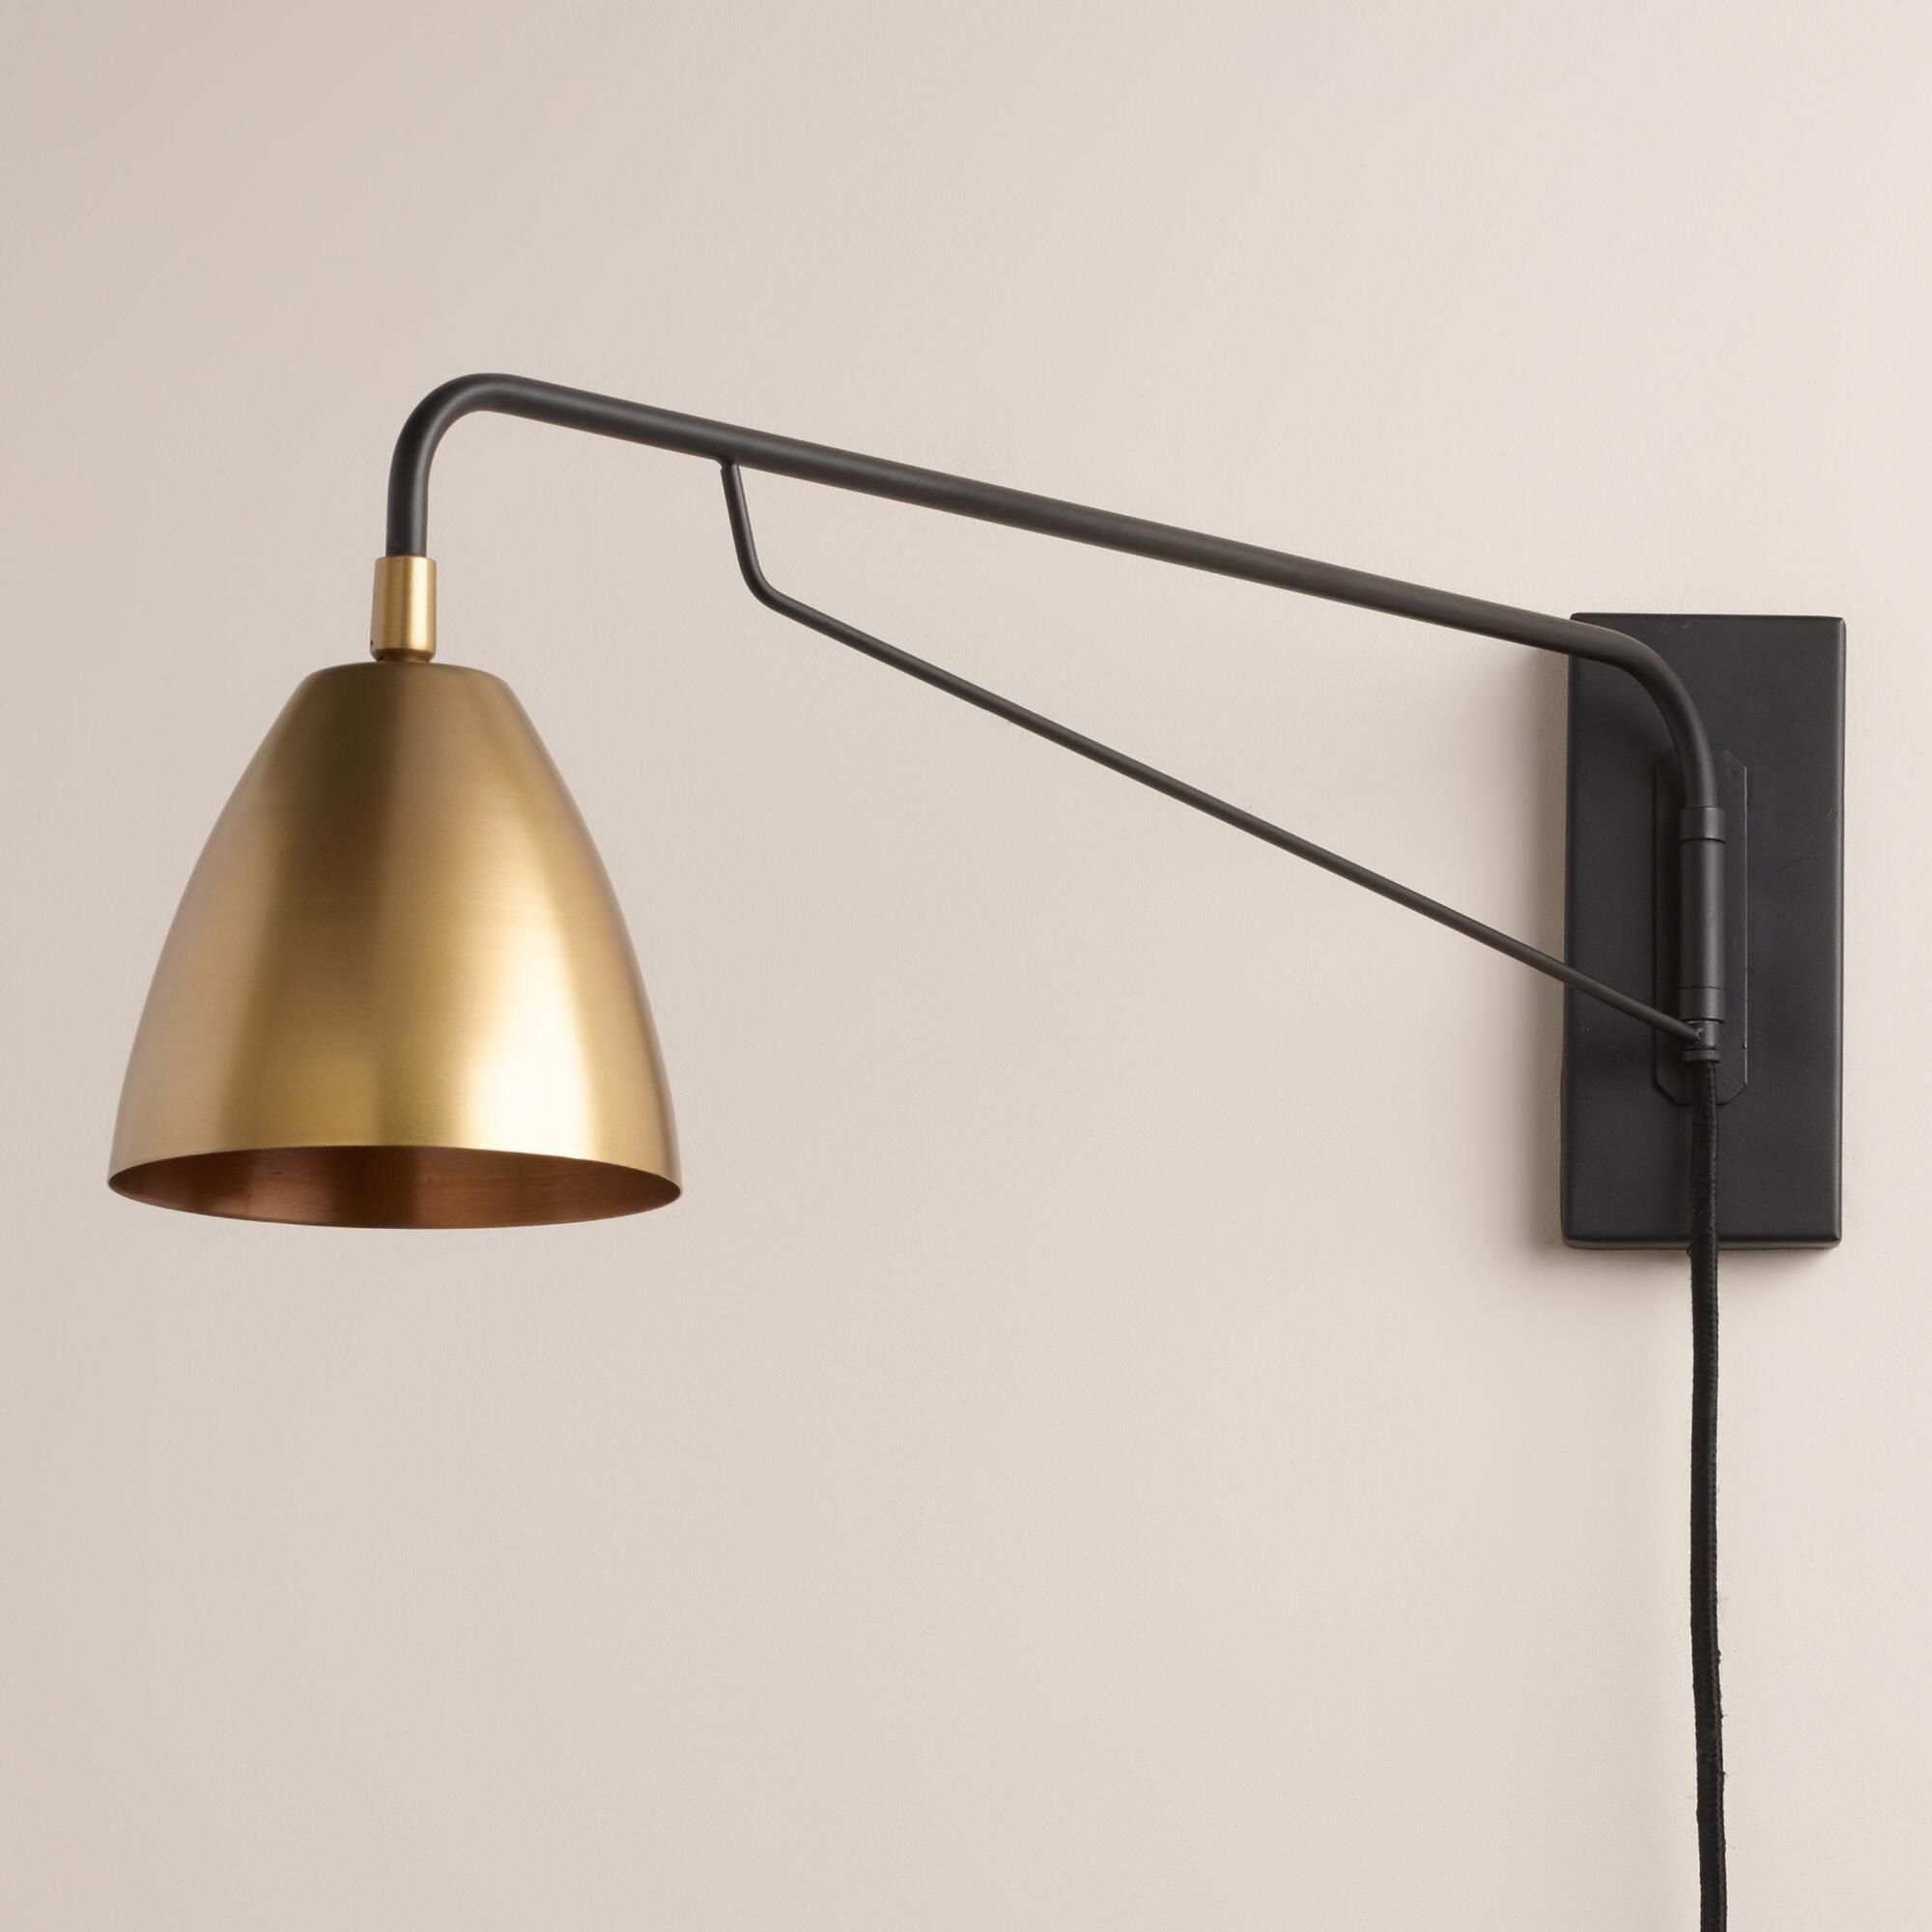 Wall Lamps Brass : Brass Nook Pivoting Wall Sconce Mid century modern design, Lighting solutions and Antique brass